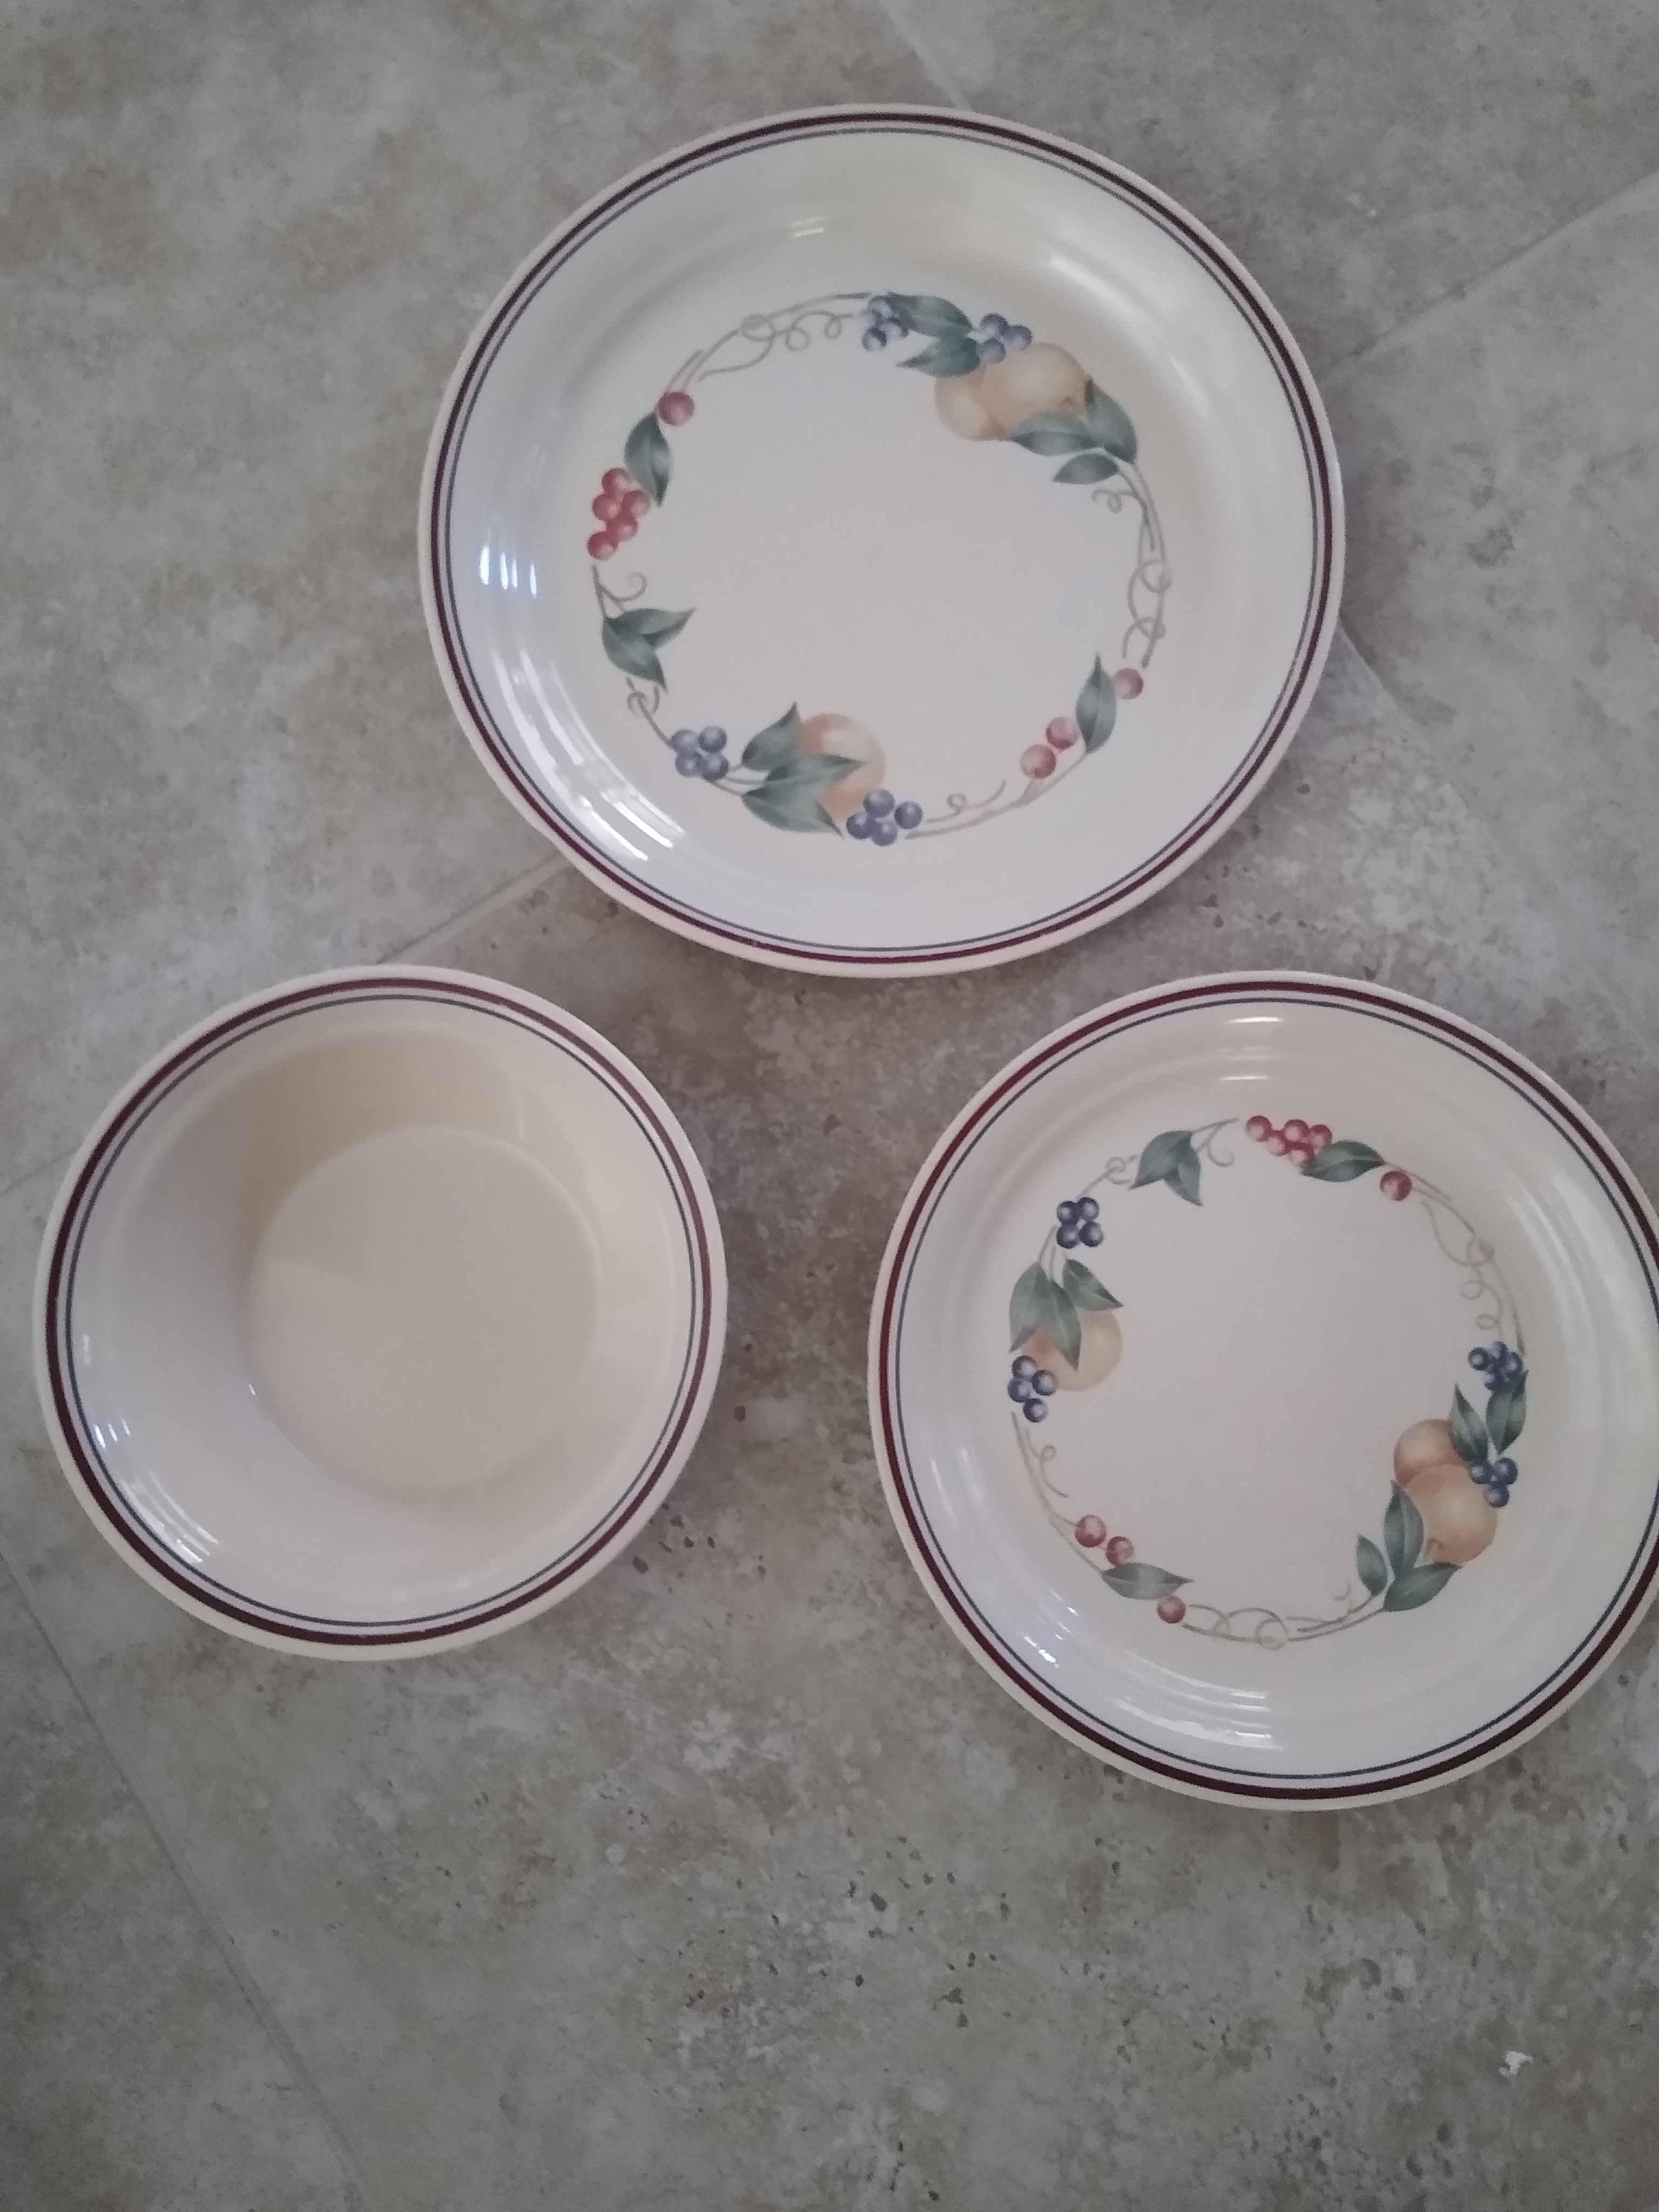 Corelle Dishes & Toaster